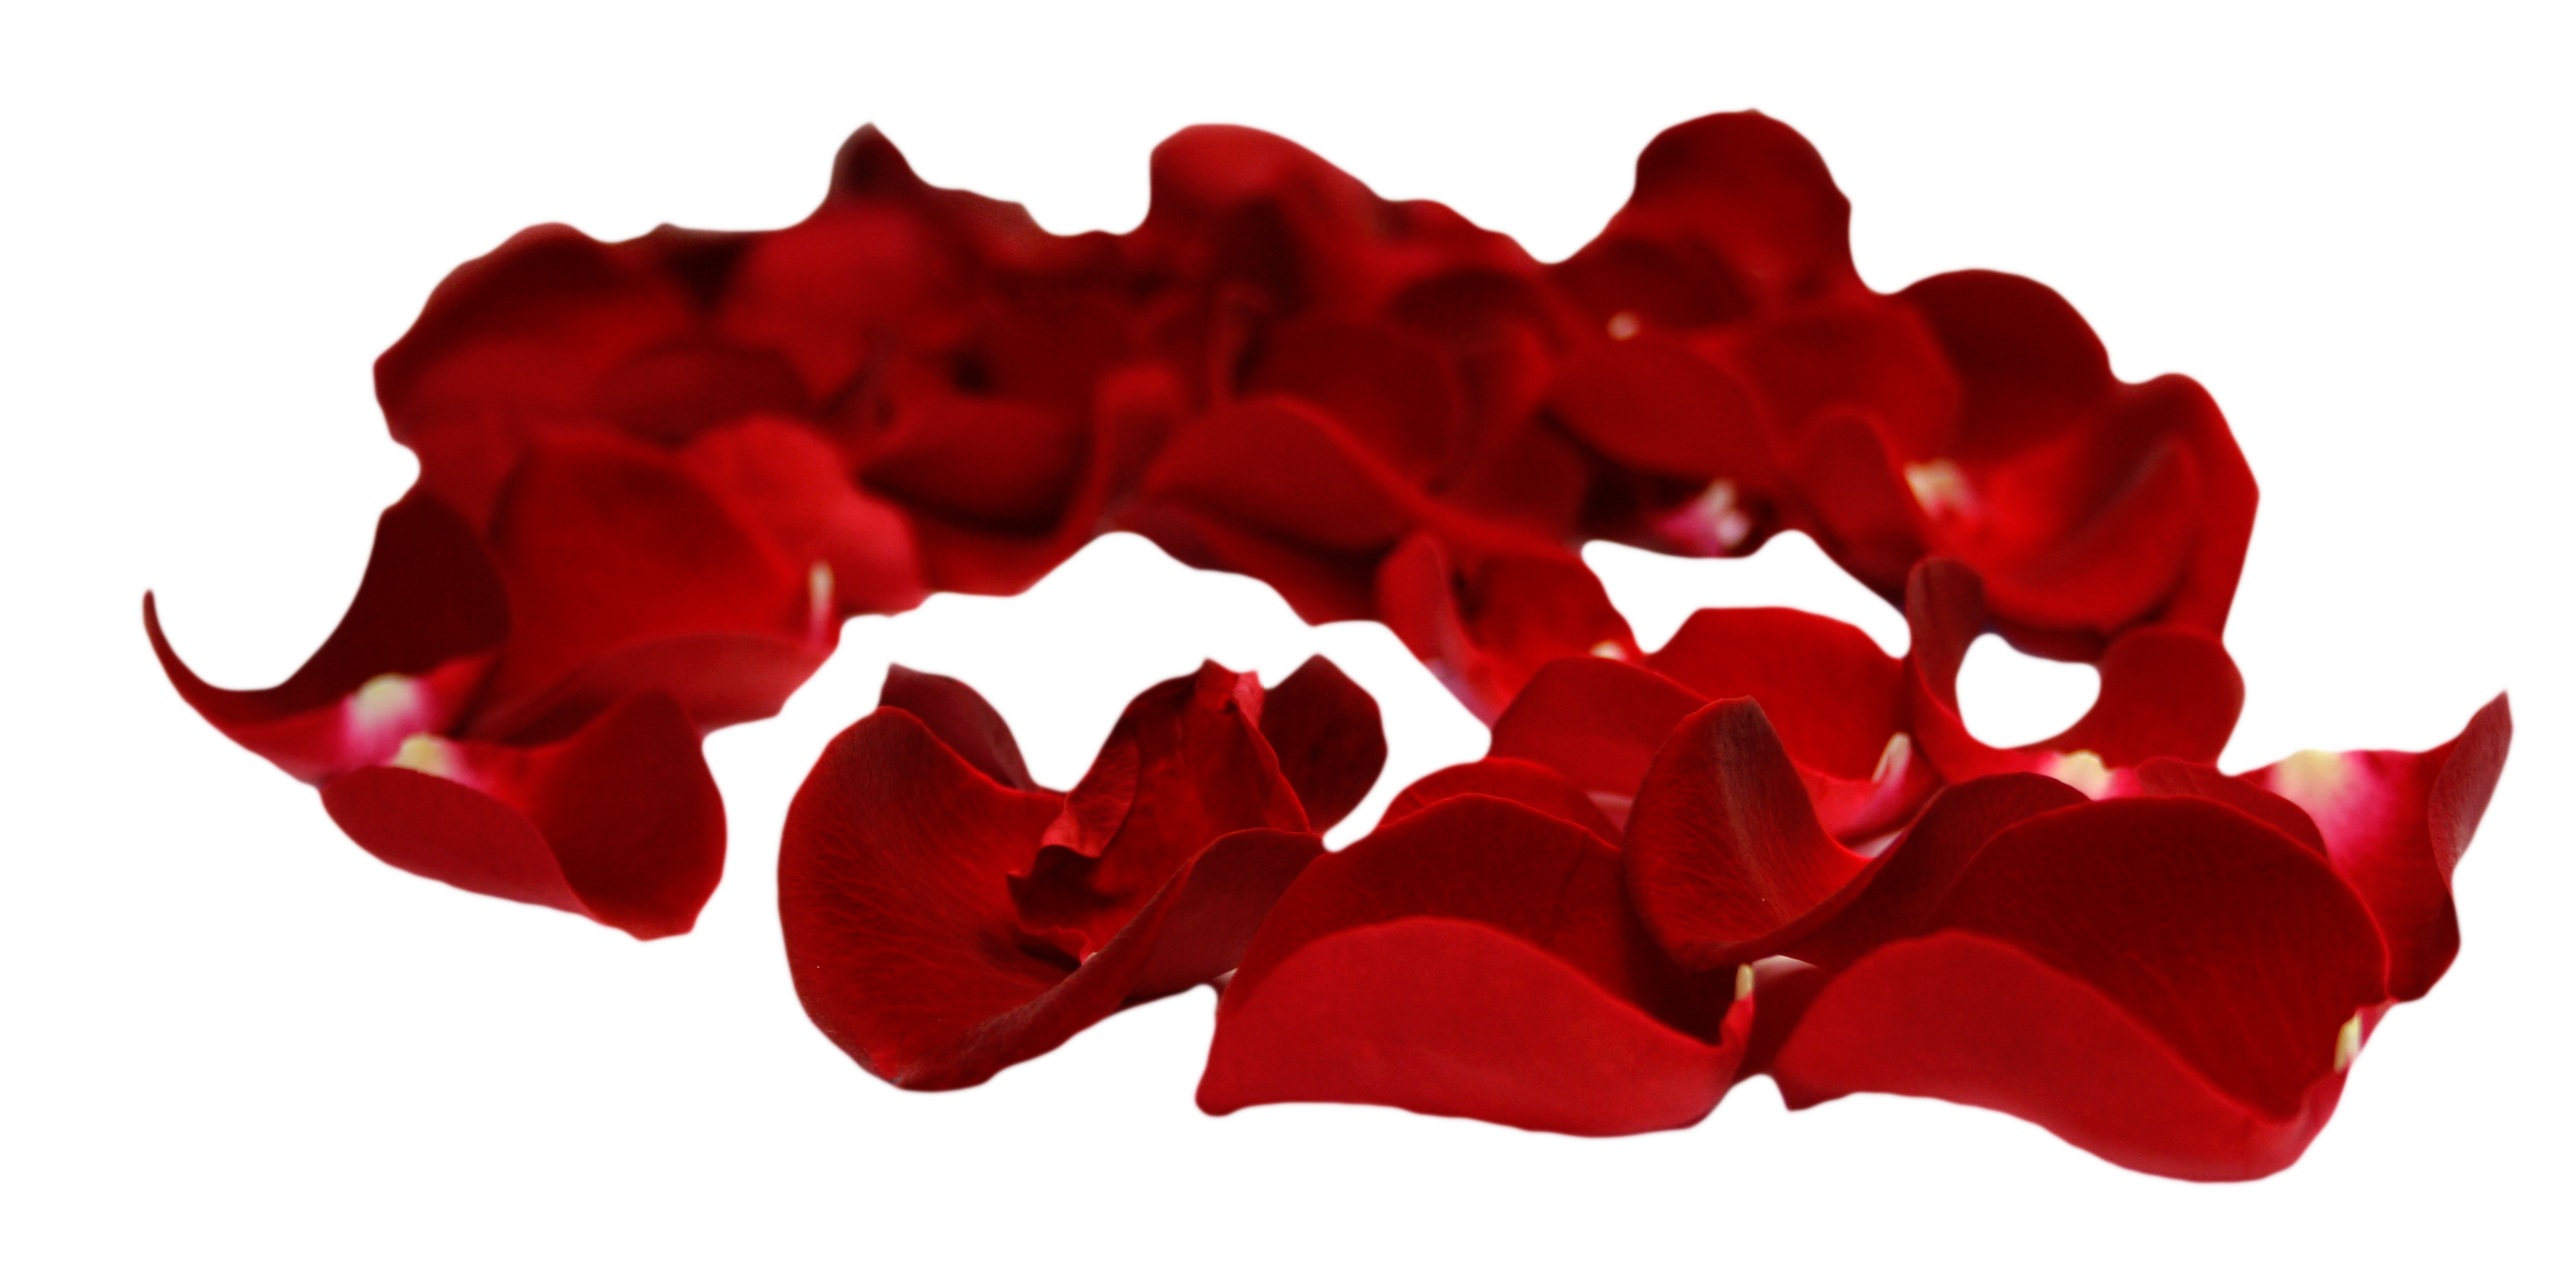 rose petals psd png with transparent background #30962